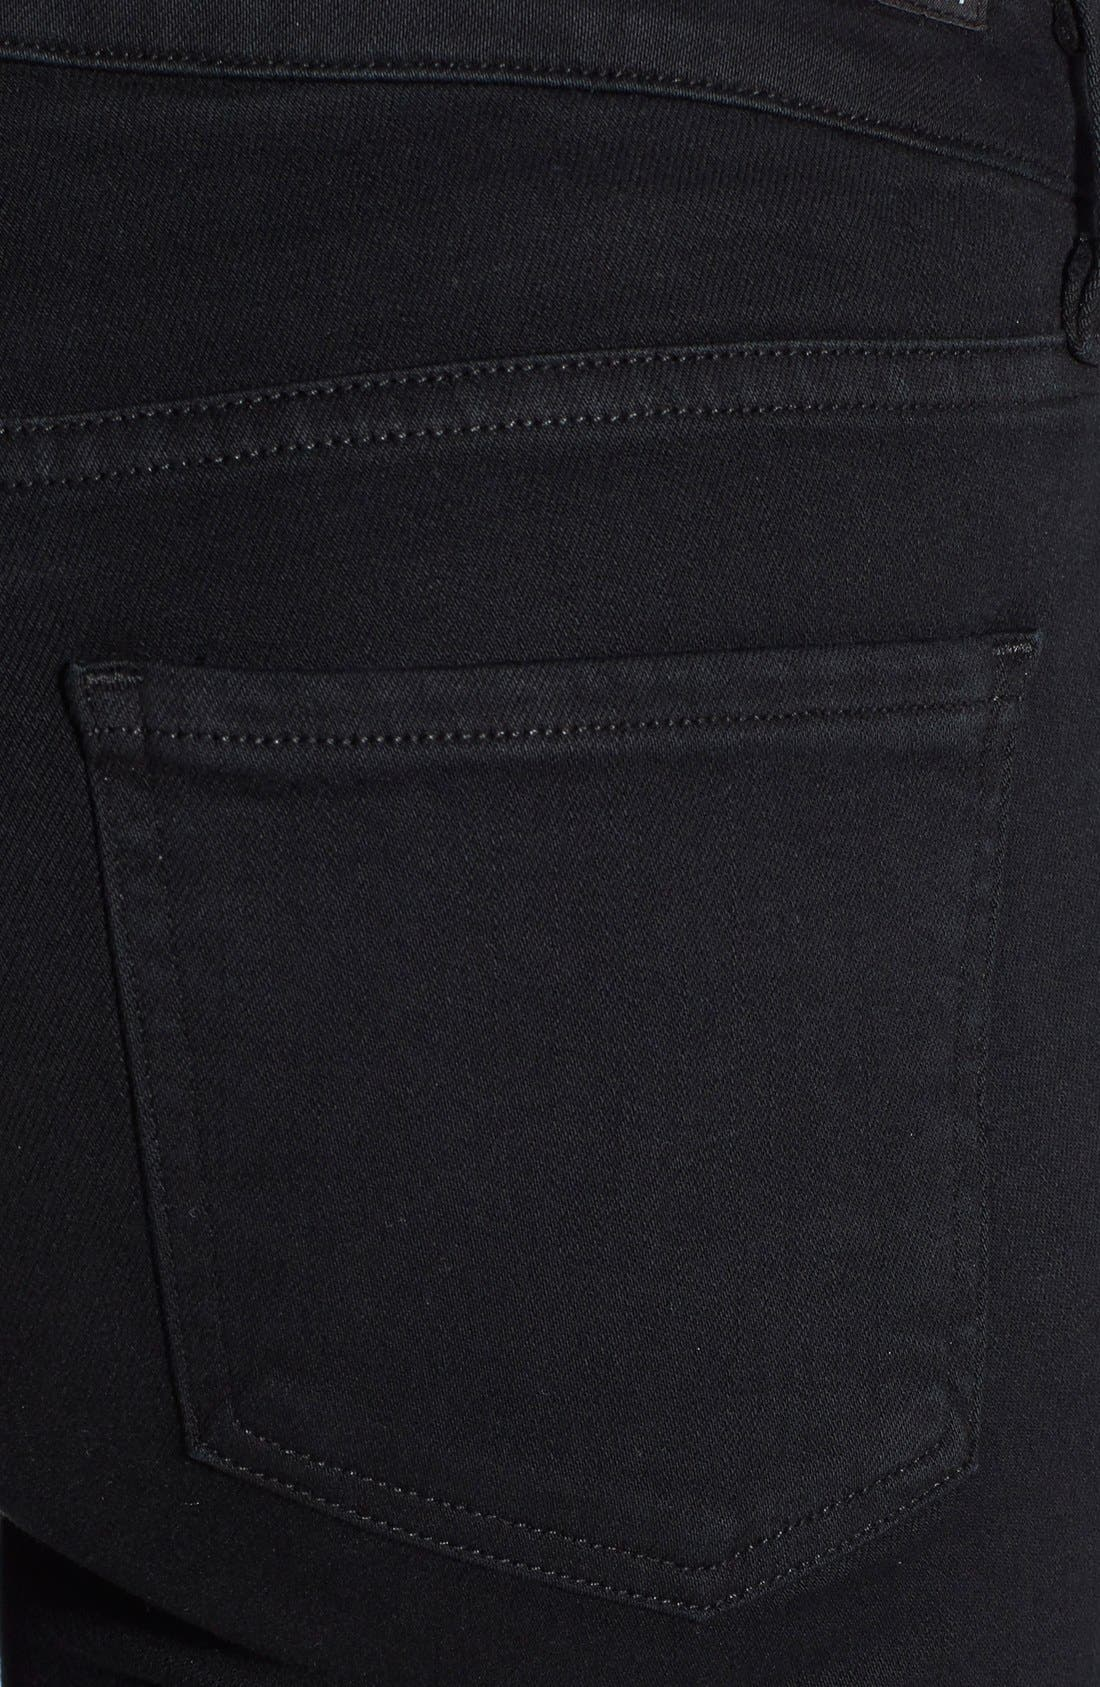 Alternate Image 3  - Citizens of Humanity 'Arielle' Mid Rise Slim Jeans (Tuxedo)